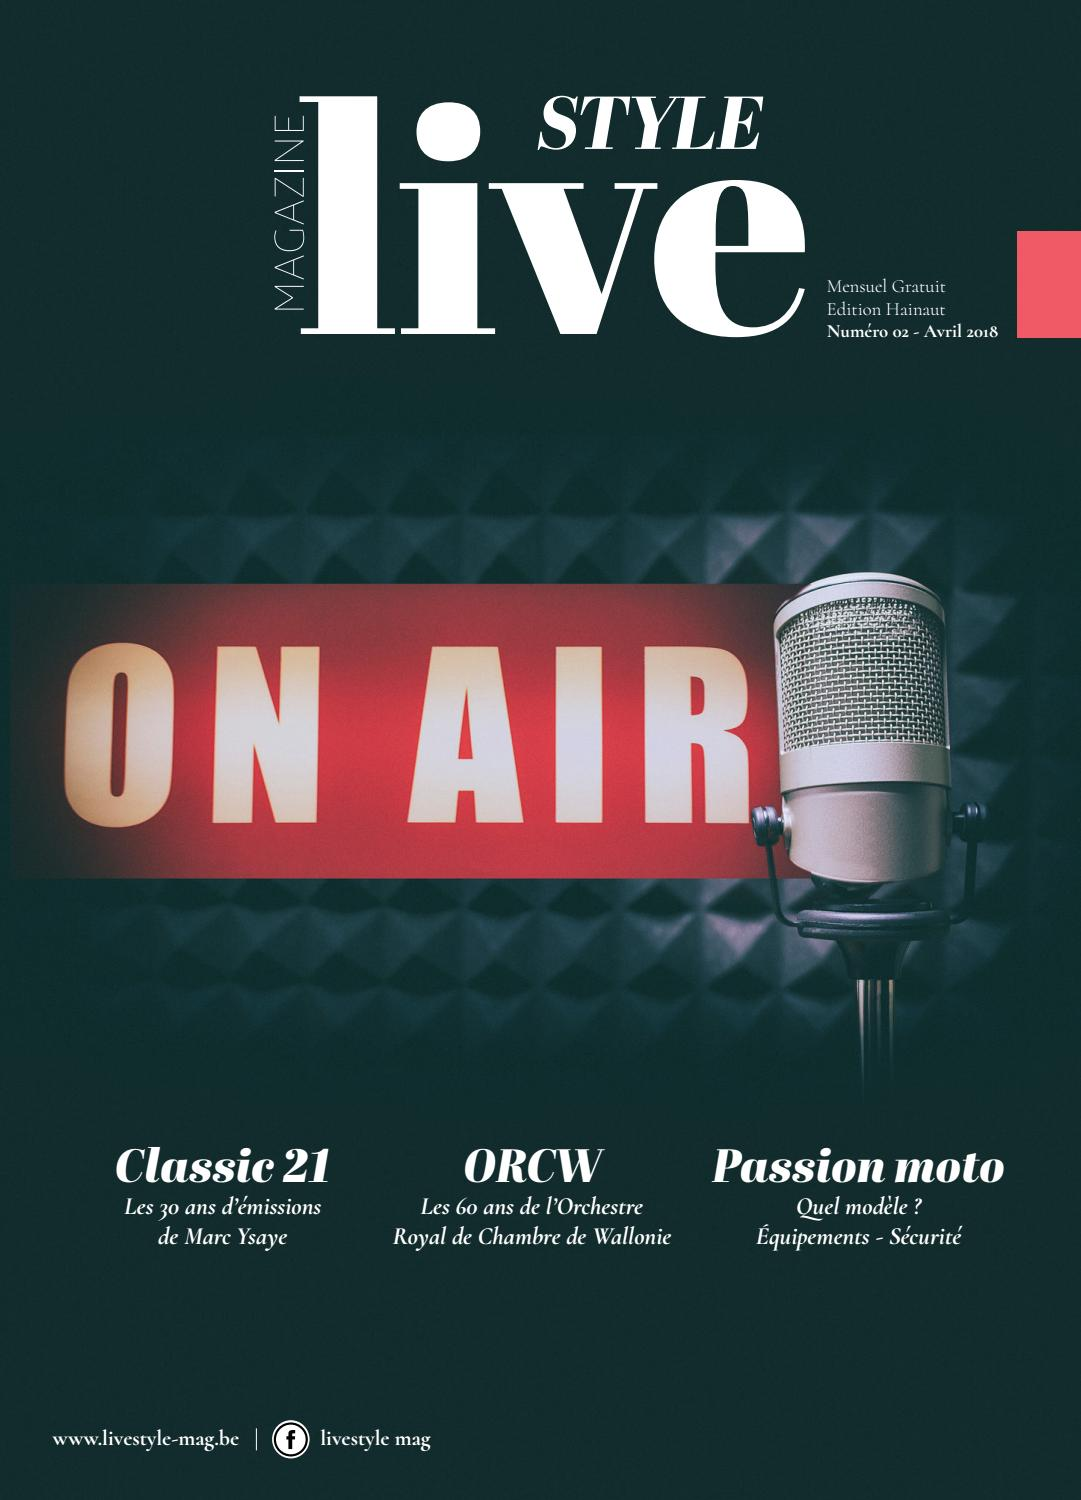 a5ee1c23c0 Livestyle 02 by Carafe.be - Xavier Bostem - issuu